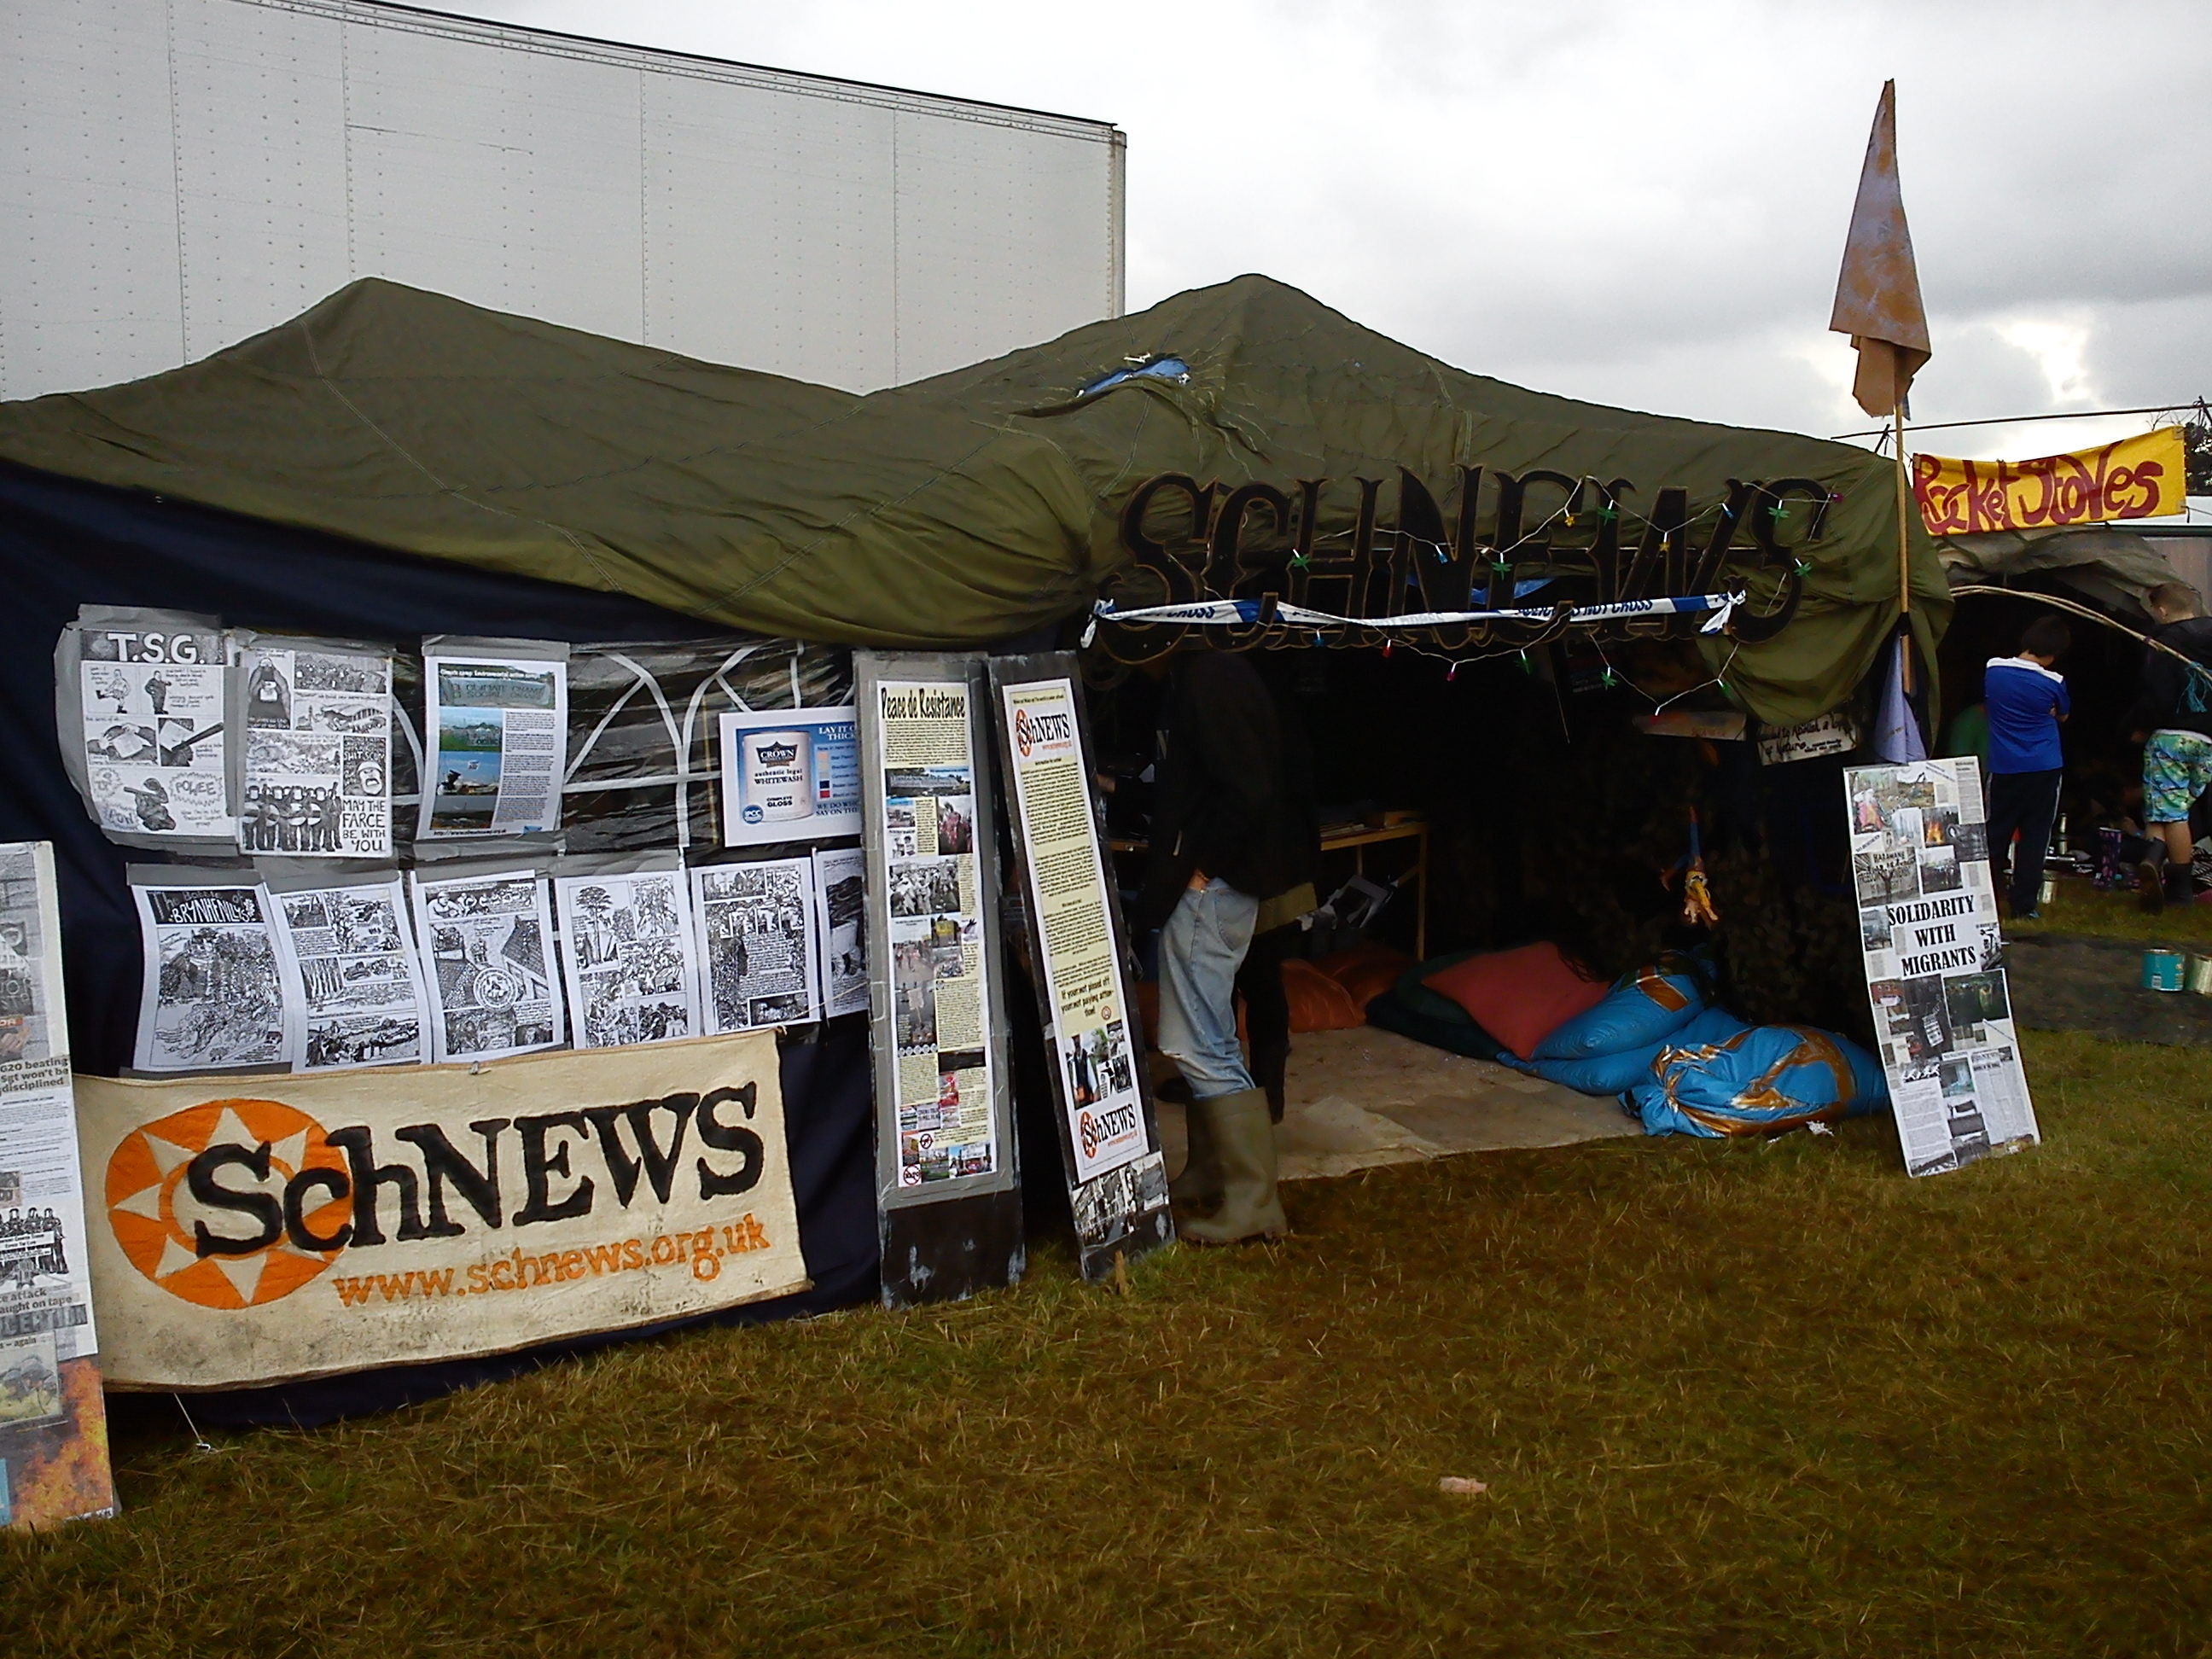 Schnews_stall_at_Boomtown_Festival.jpg